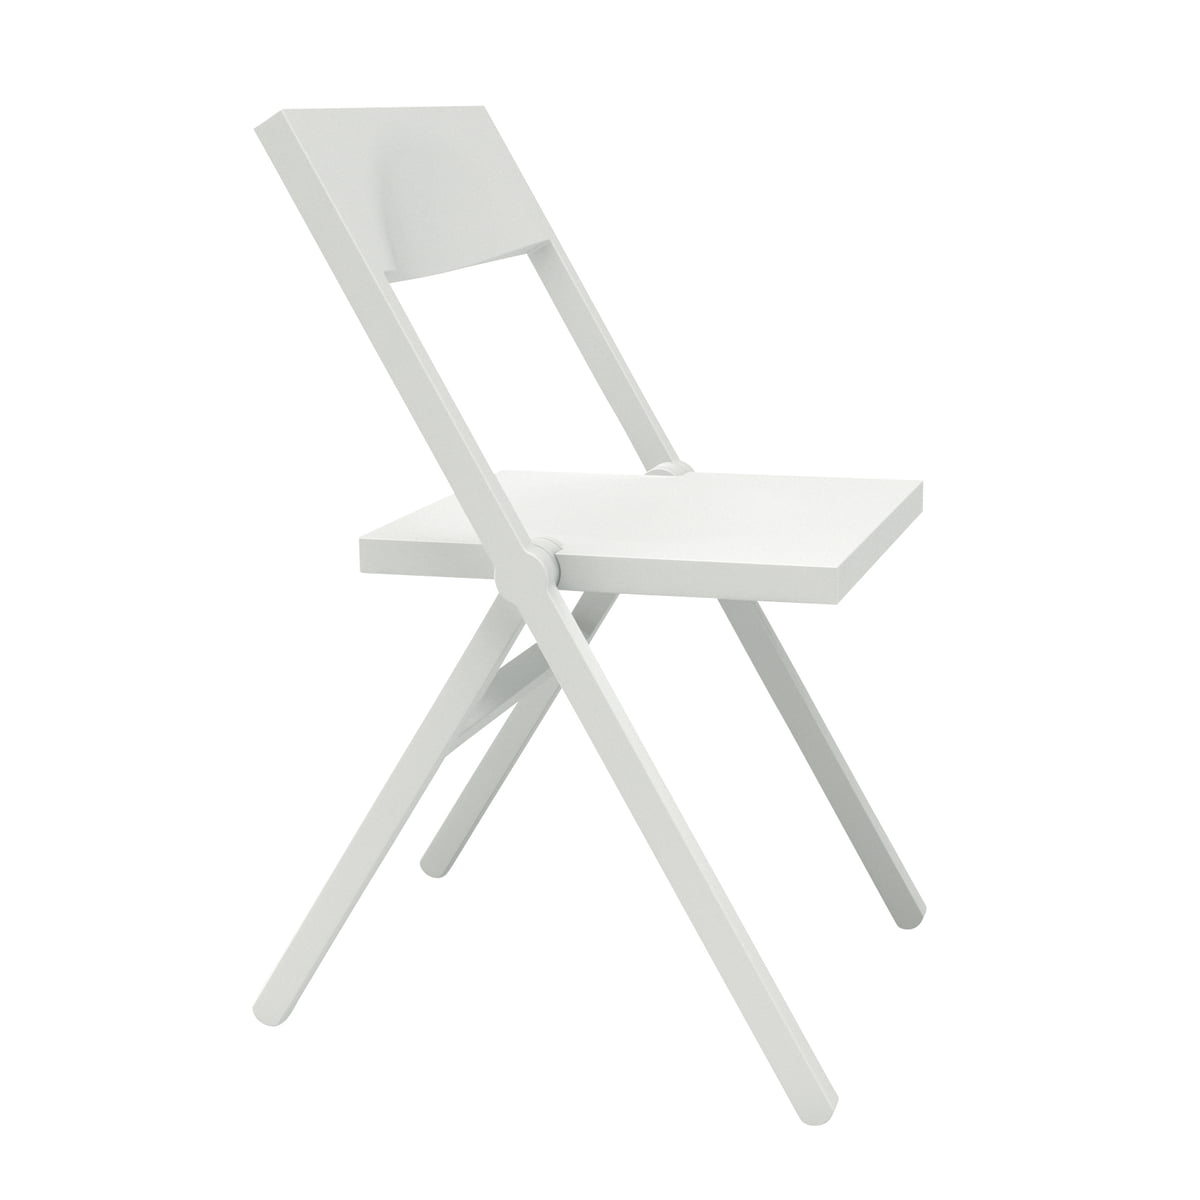 Alessichair By Lamm   Piana Folding Chair, White